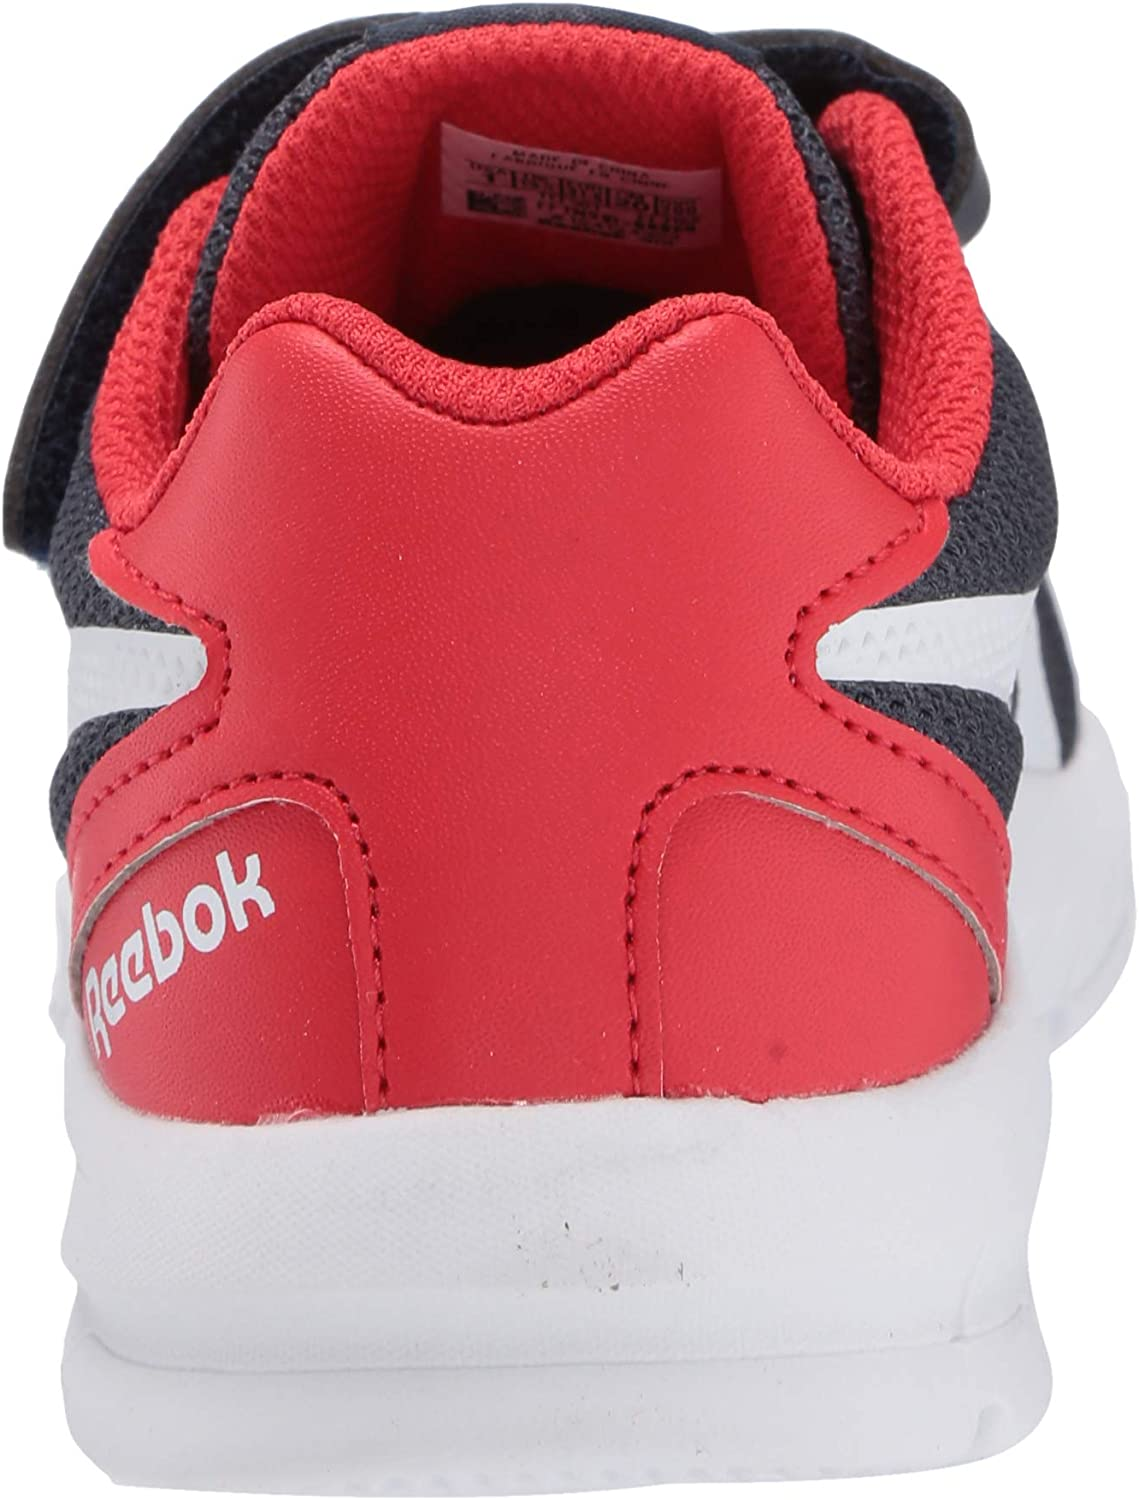 Reebok Kids Rush Runner 2.0 Running Shoe